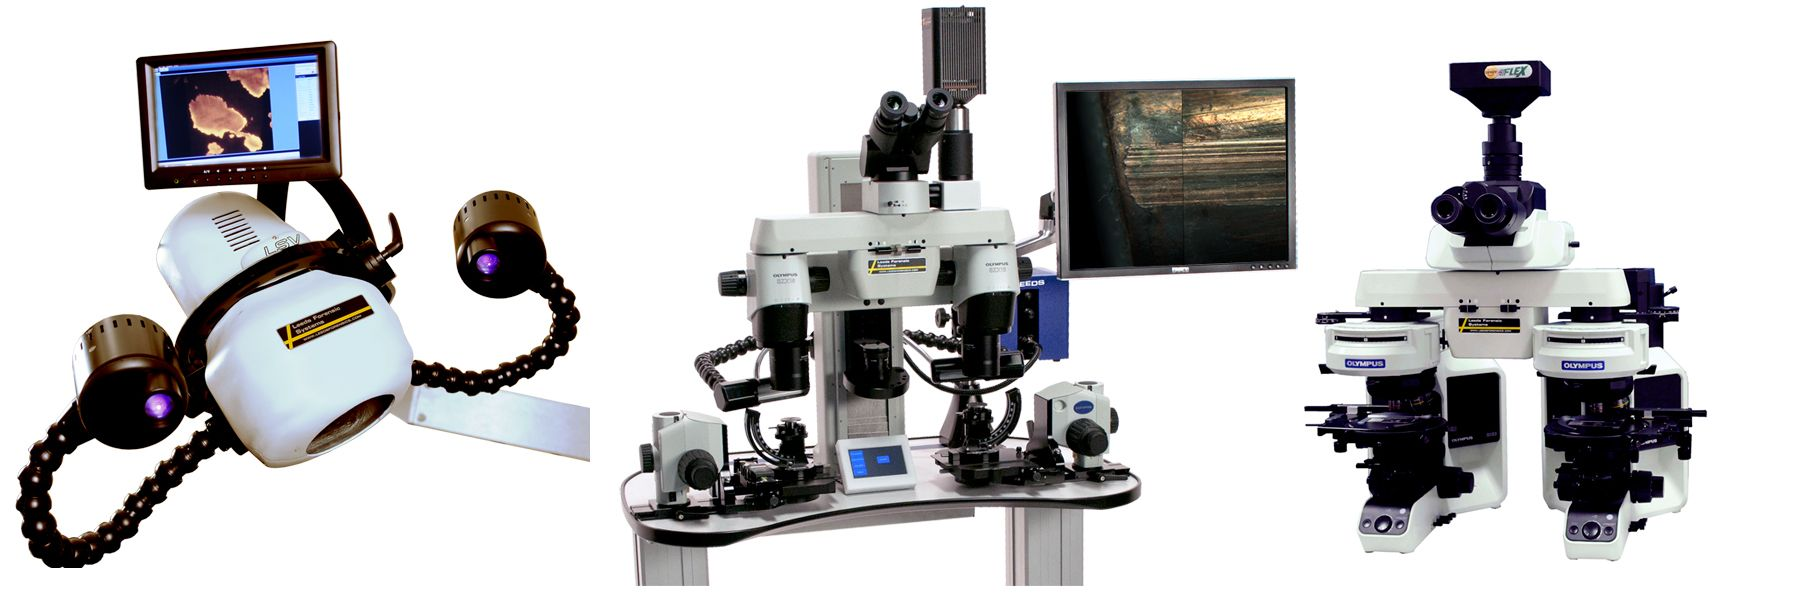 Leeds Lsv Lcf3 And Lct Forensic Laboratory Comparison Microscopes And Alternate Light Source Systems Forensics Lab Equipment Light